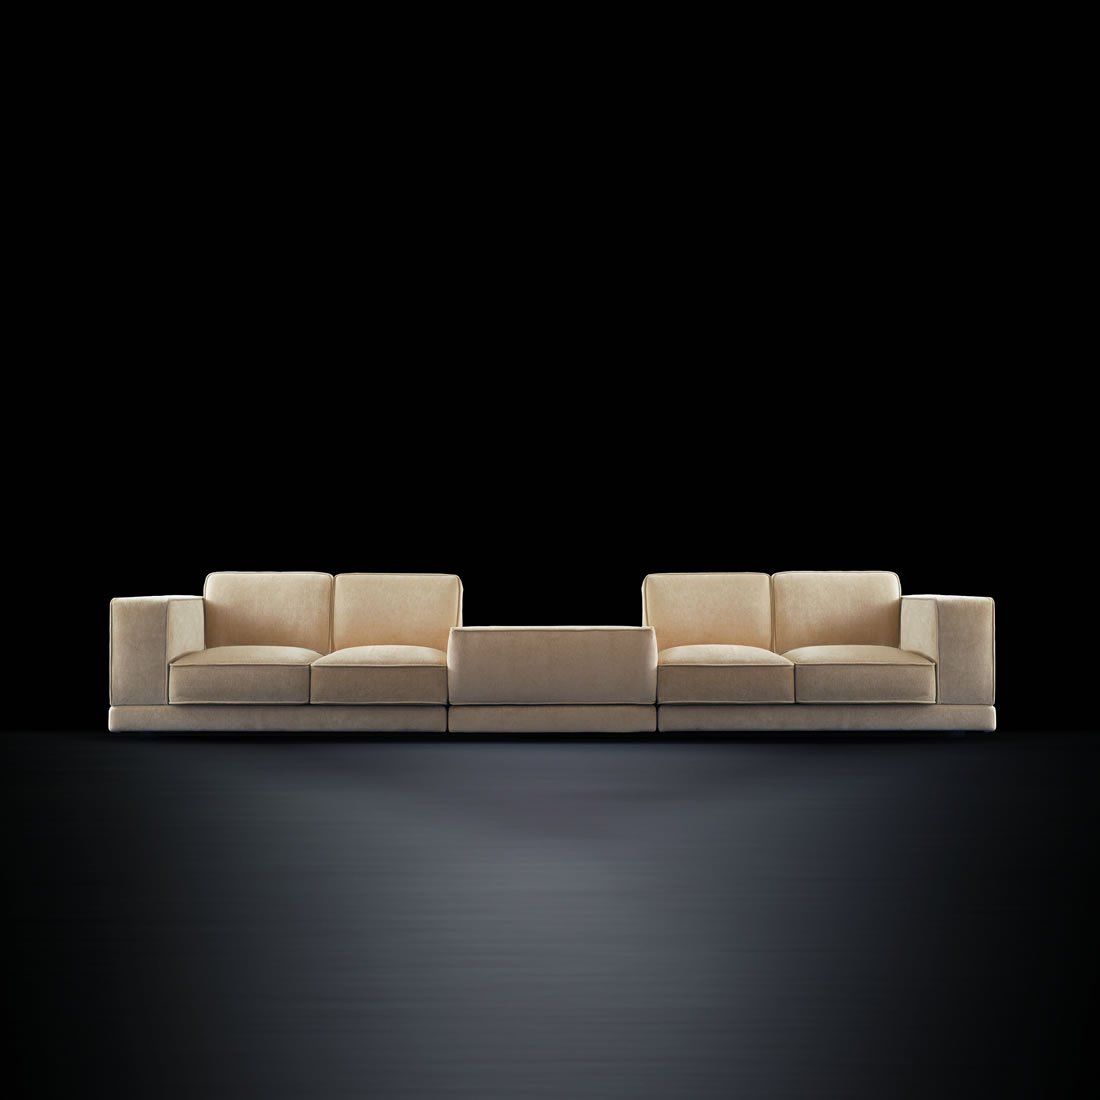 Brilliant Square Couch 1100 x 1100 · 42 kB · jpeg